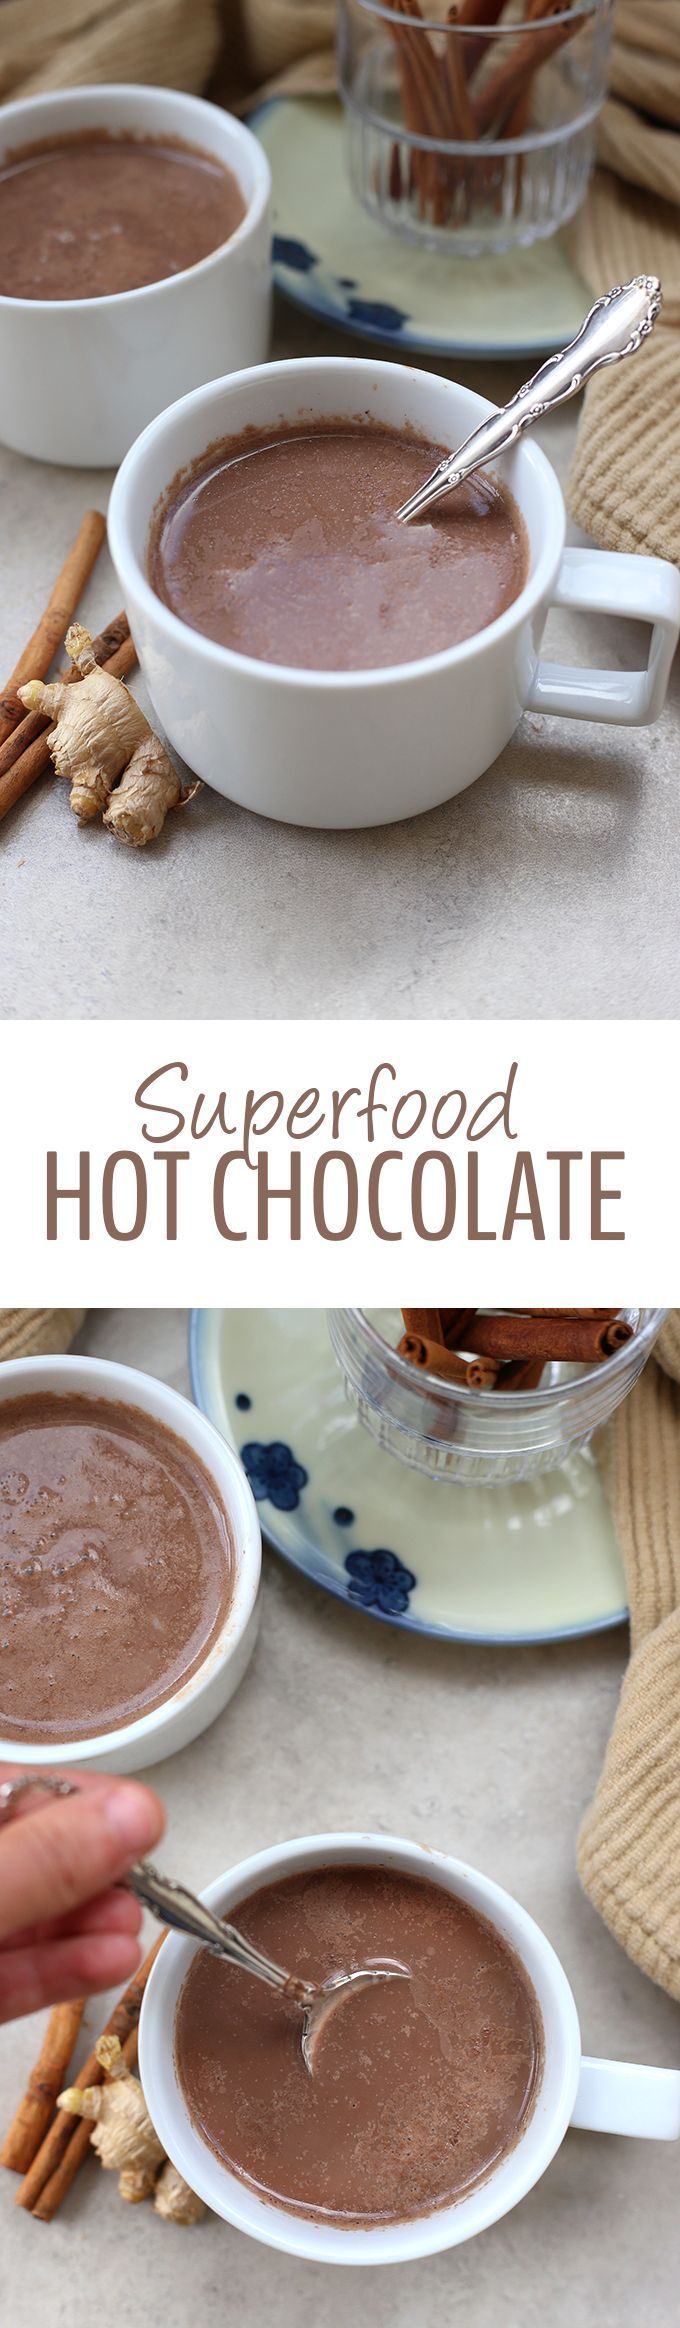 This Superfood Hot Chocolate is packed-full of immune-boosting, antioxidant-filled ingredients that make for one heck of cup of hot cocoa! From coconut, to turmeric and the sweetness of raw honey, this is a hot chocolate recipe you can feel good about dri